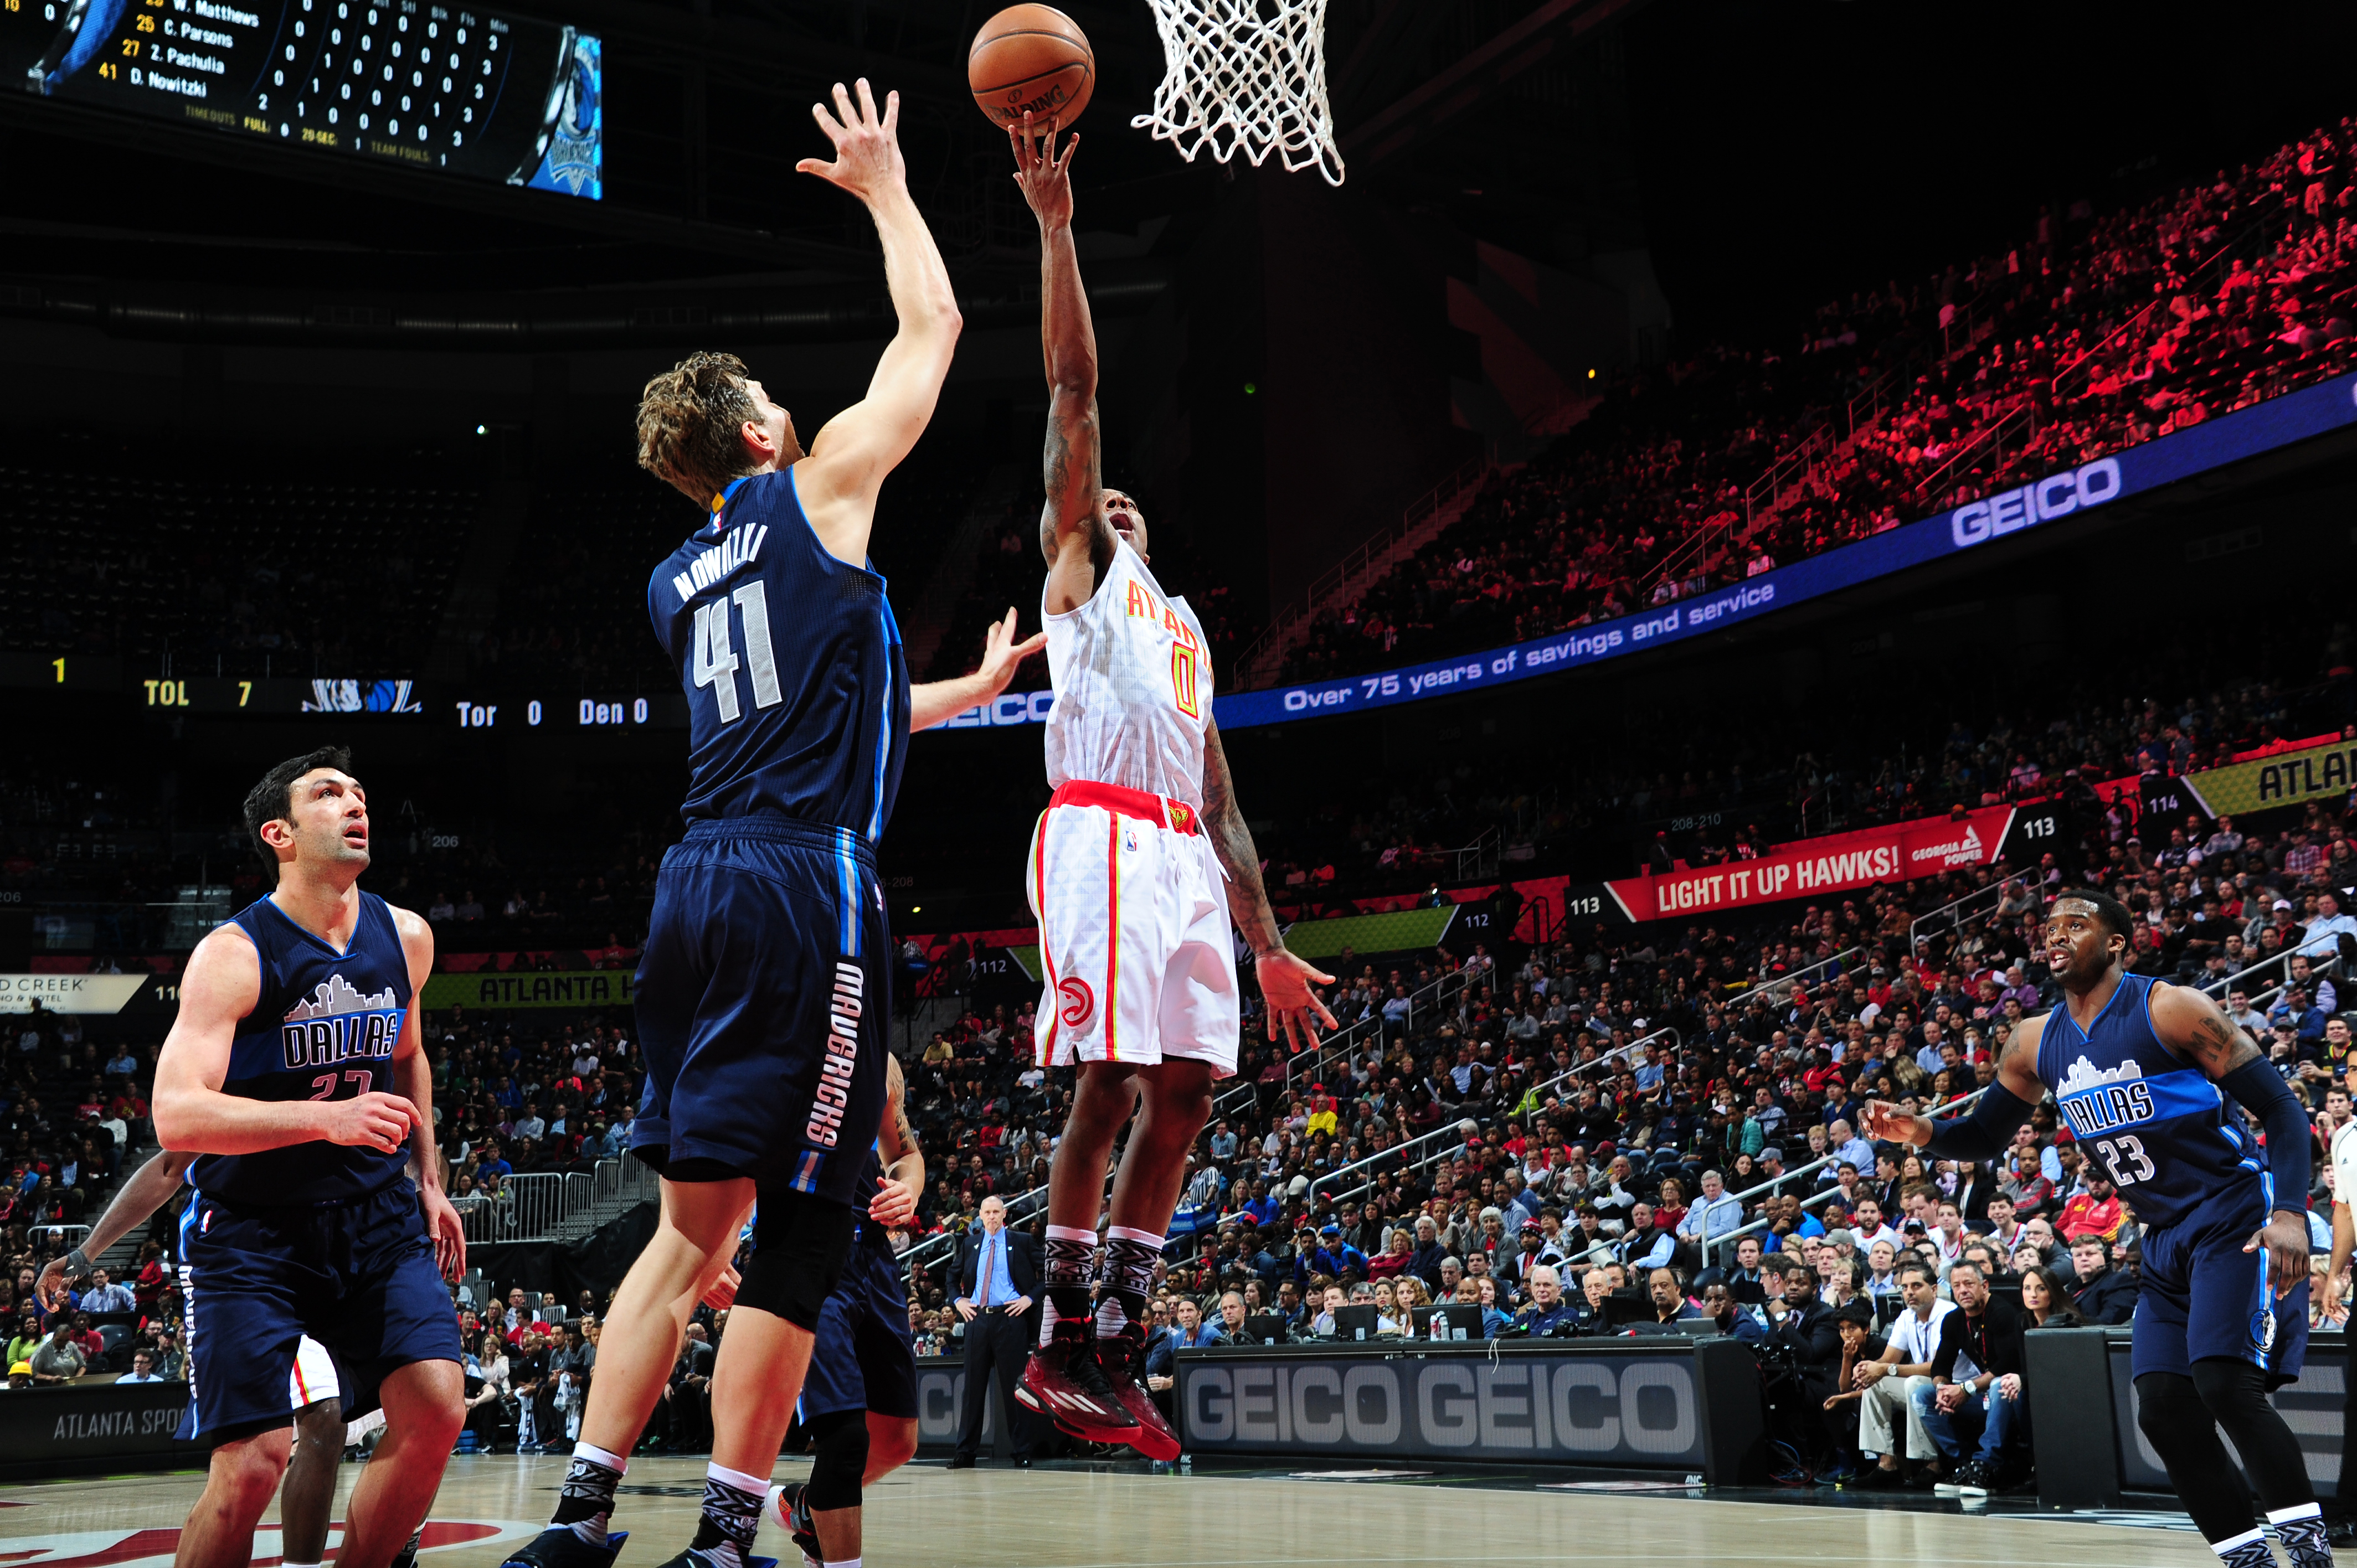 ATLANTA, GA - FEBRUARY 1: Jeff Teague #0 of the Atlanta Hawks shoots the ball against the Dallas Mavericks on February 1, 2016 at Philips Arena in Atlanta, Georgia.  (Photo by Scott Cunningham/NBAE via Getty Images)